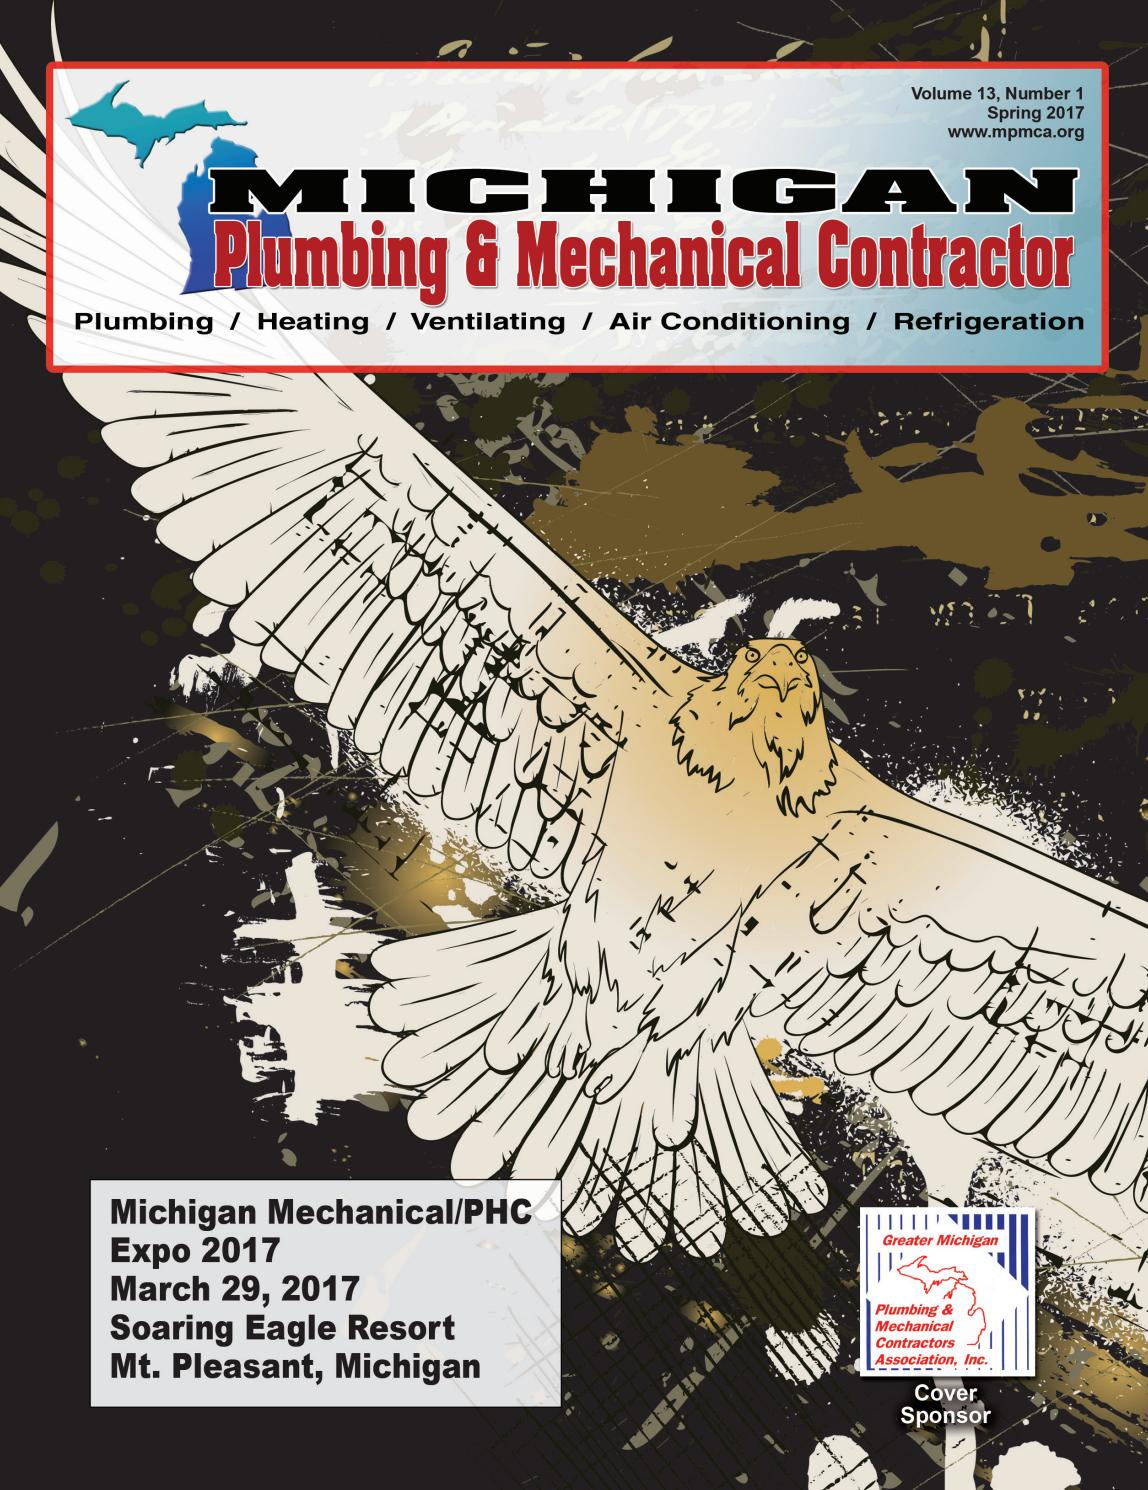 Michigan Plumbing & Mechanical Contractor, Spring 2017 by